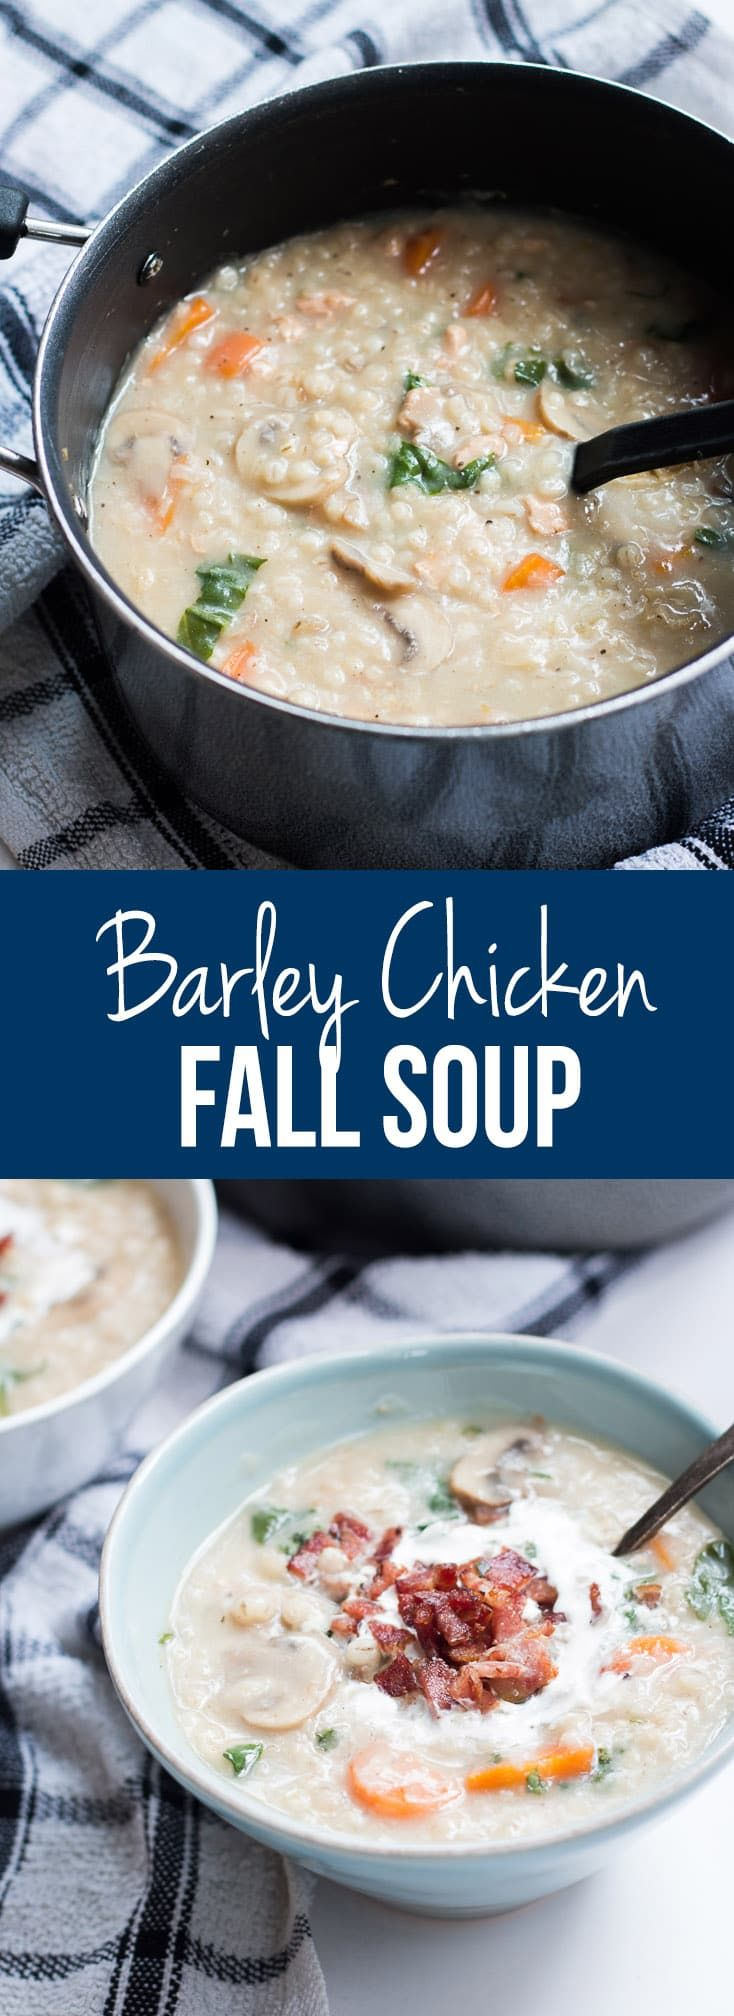 Homestyle Barley Chicken Fall Soup | Recipe | Soup and ...